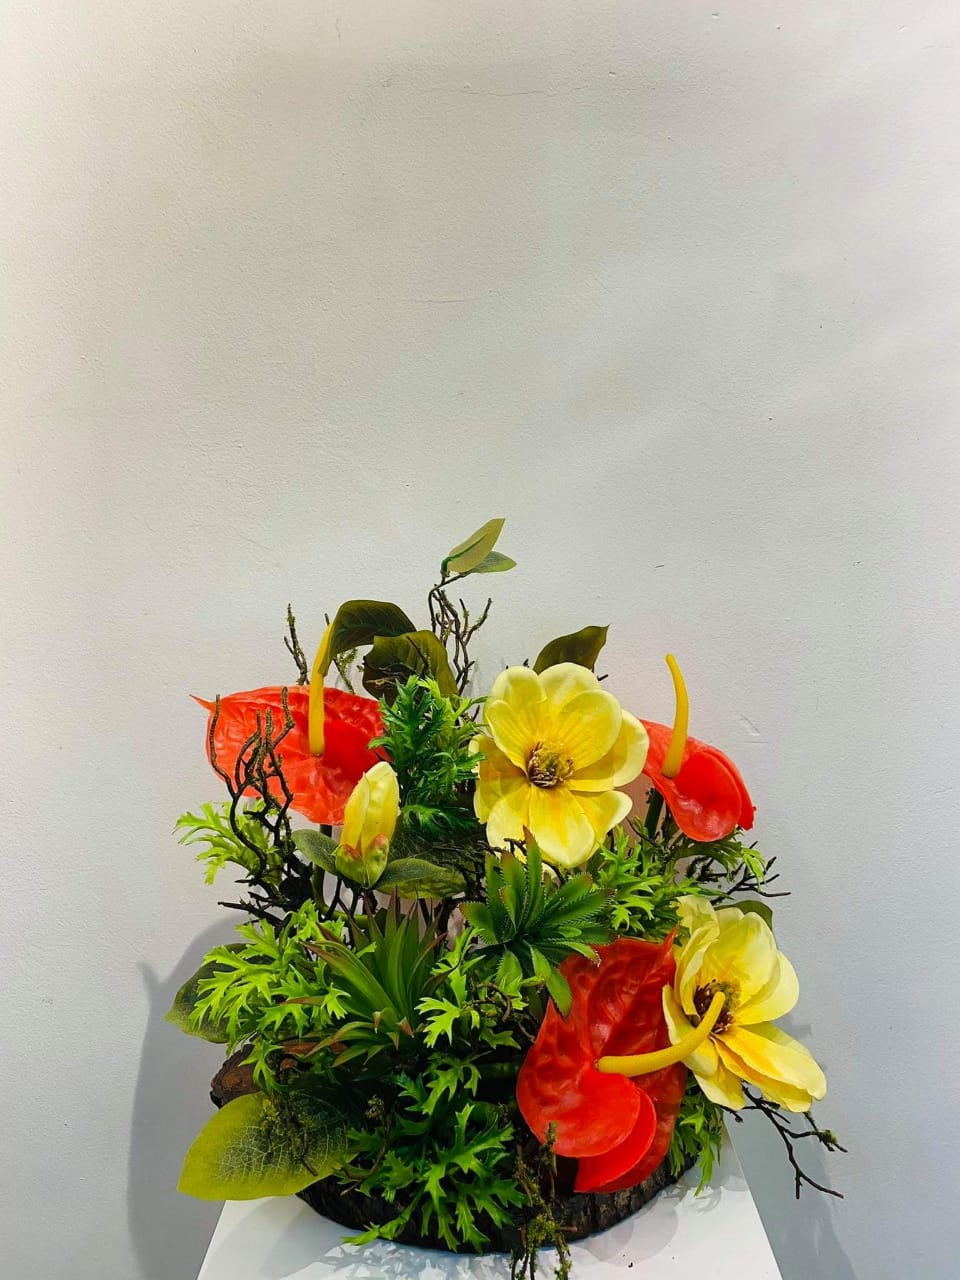 Artificial Floral Arrangement (h:37cm w:36cm)